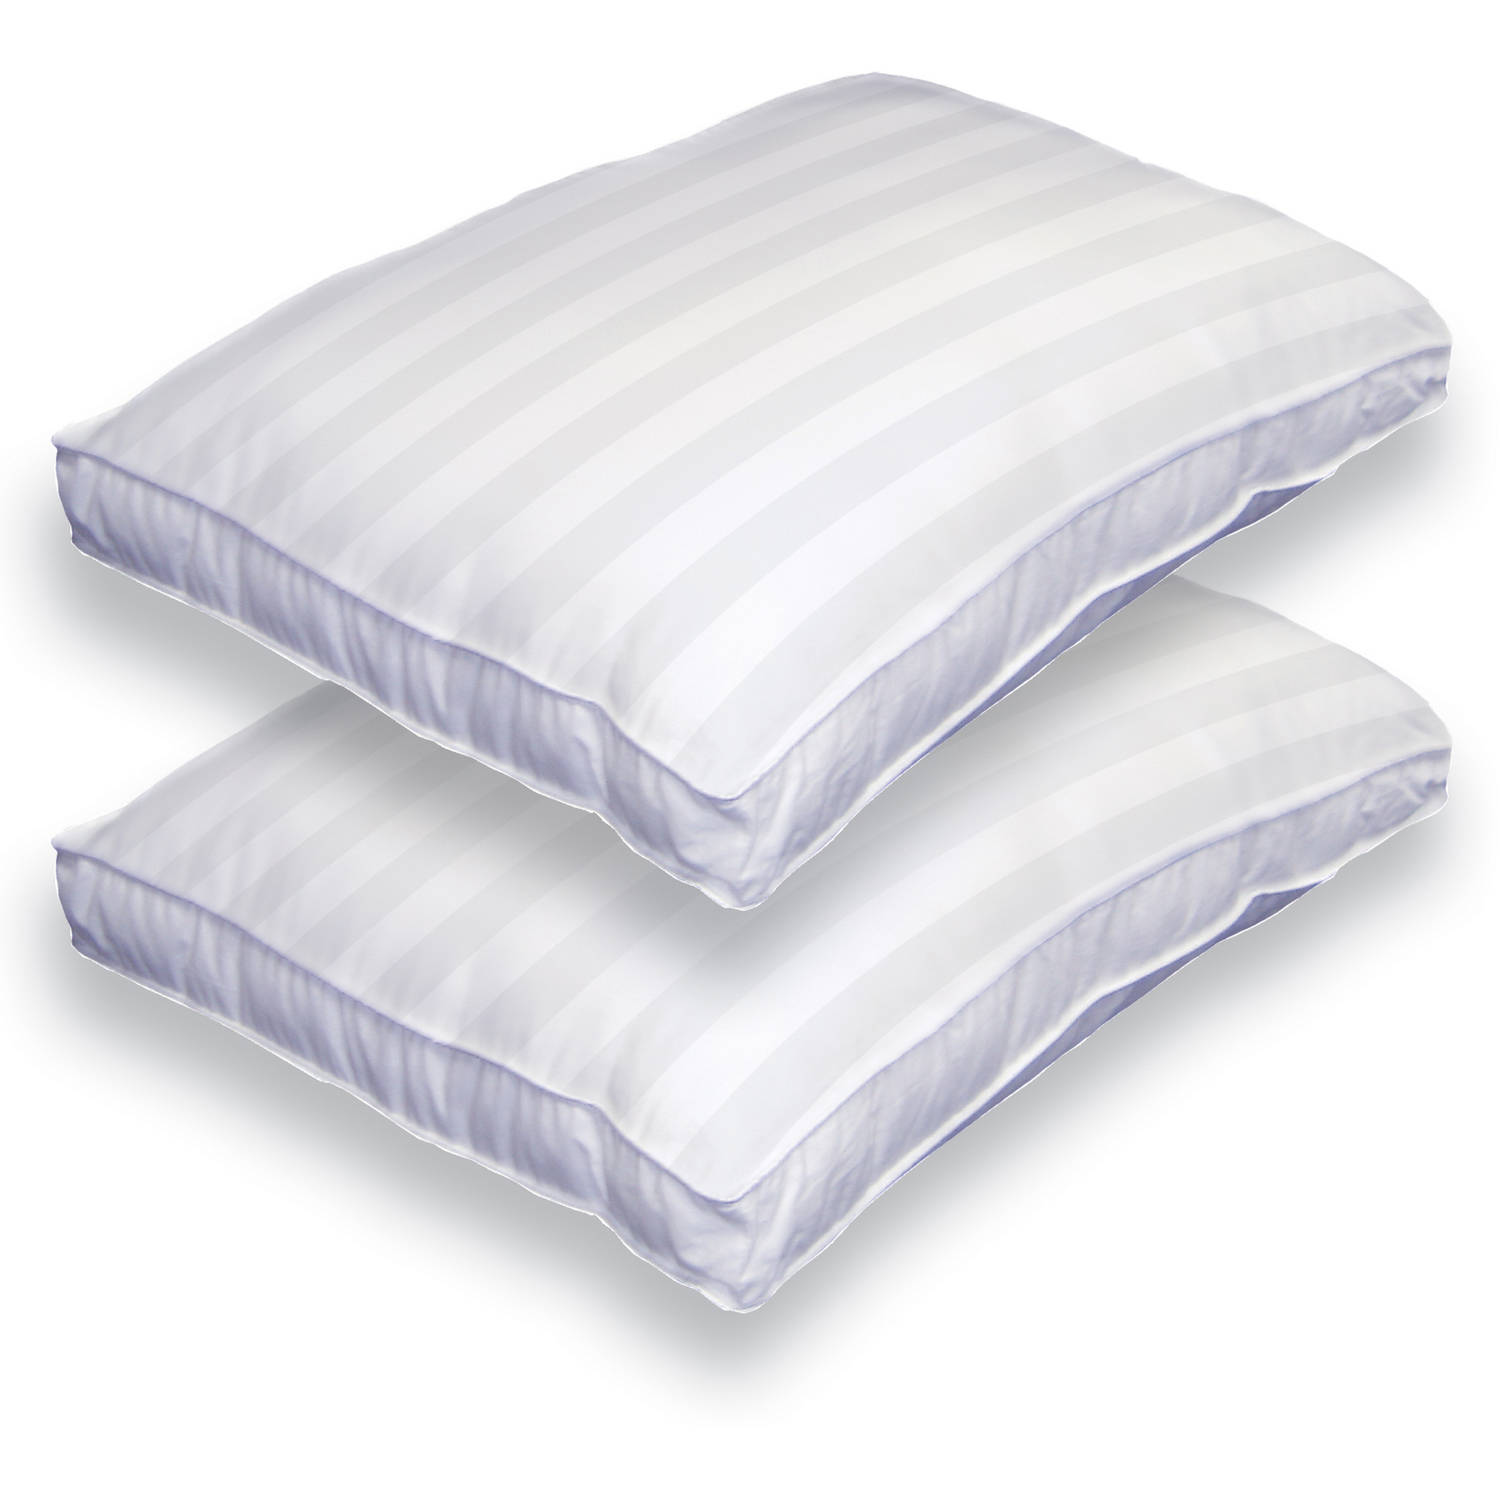 Beautyrest Down Alternative Gel Pillows, Set of 2